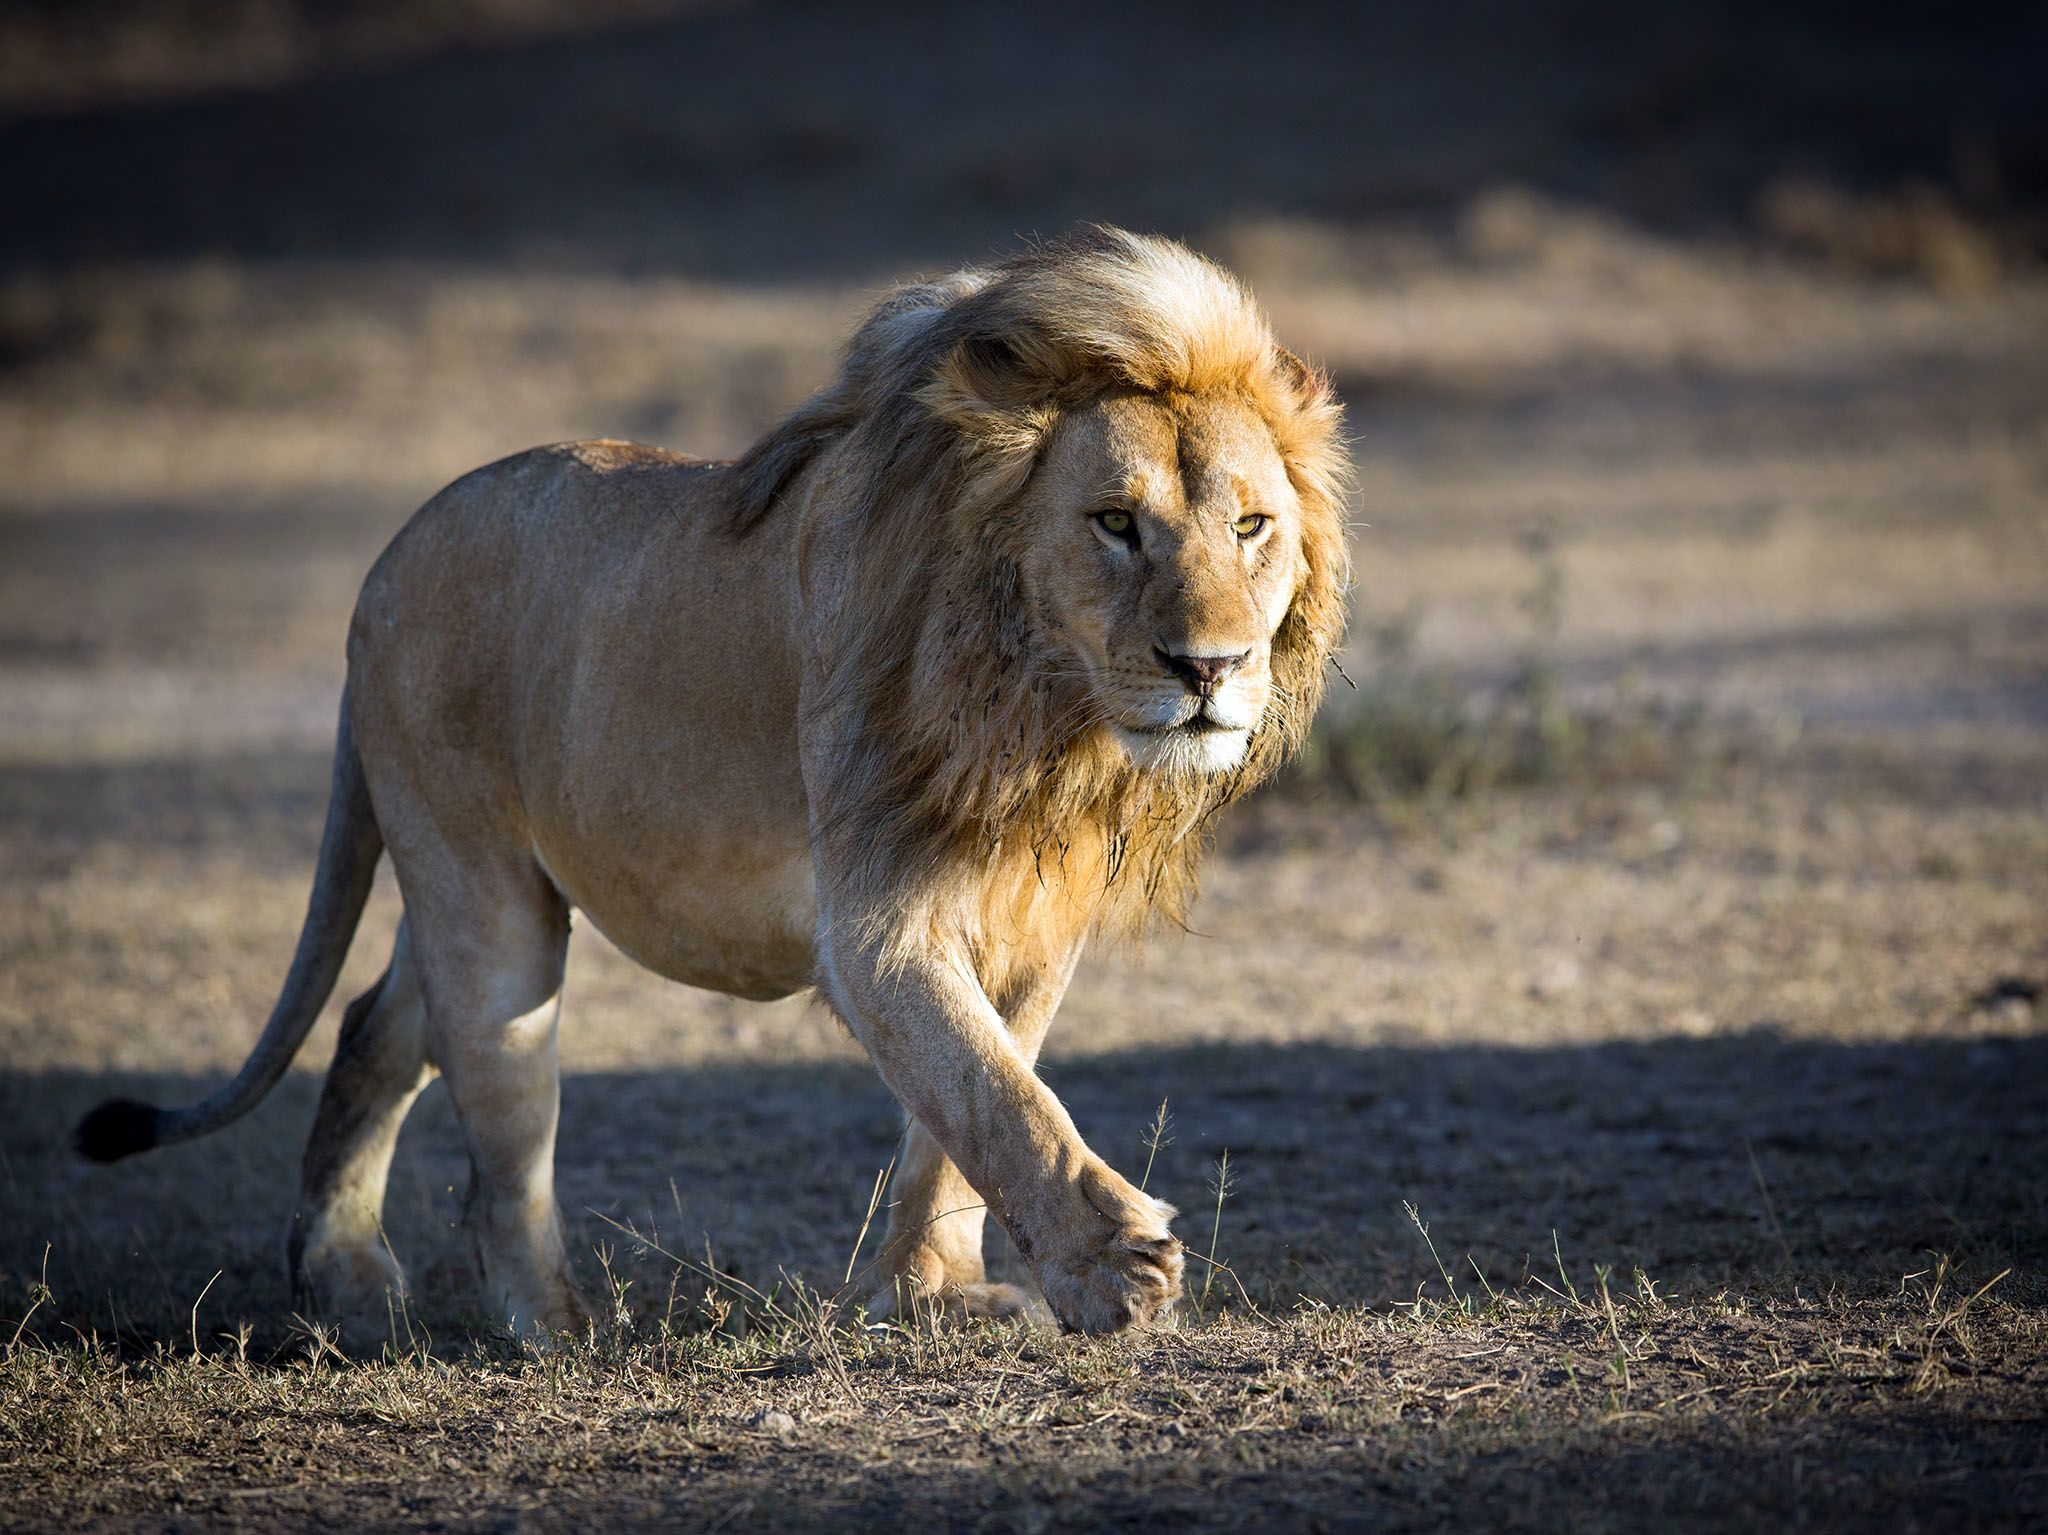 Serengeti, Tanzania: Male Lion patrolling territory in Ndutu. This image is from Survive the Wild. [Photo of the day - May 2017]